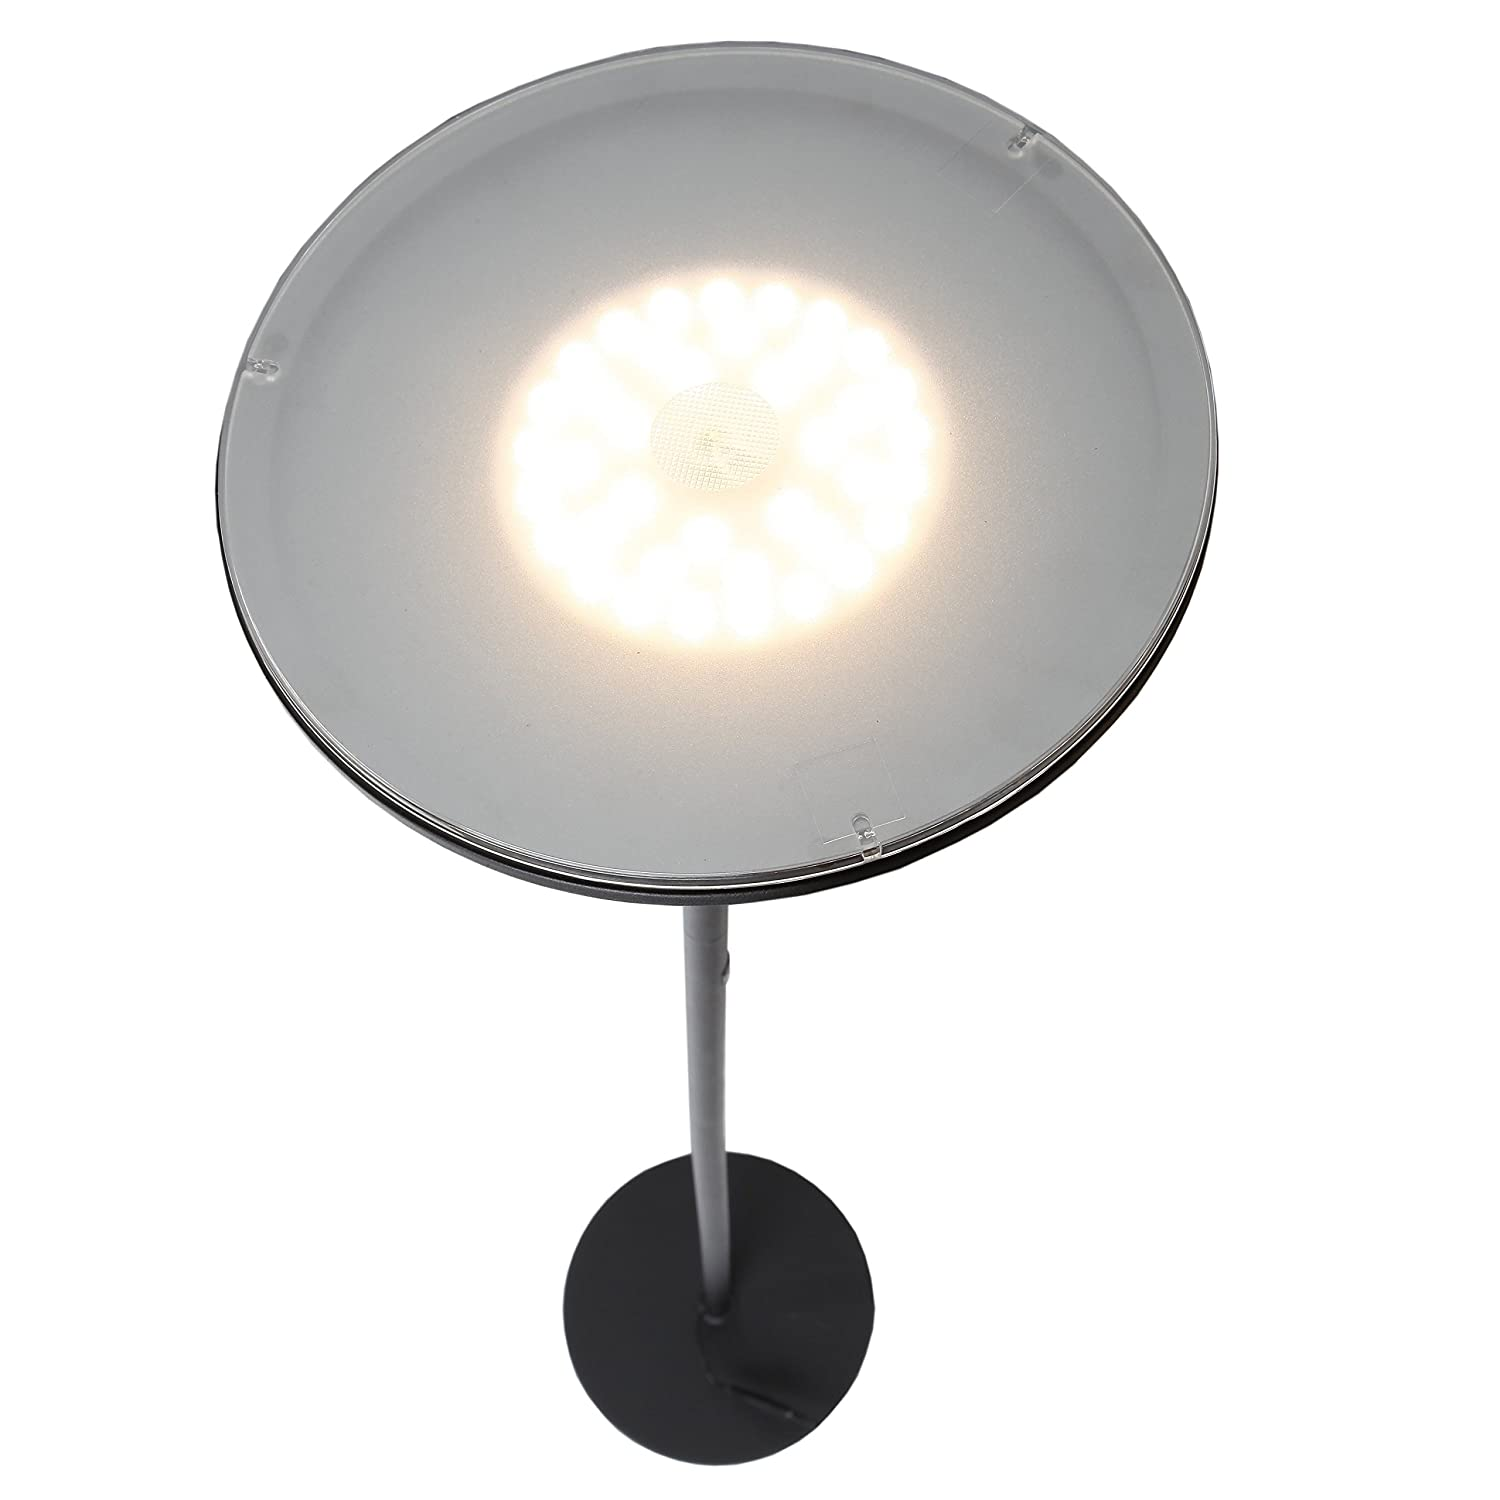 brightech  sky led torchiere floor lamp  dimmable super bright  - designed to last advanced led technology lets the sky torchiere outpacelamps that depend on standard ordinary shortlived cfl and incandescentbulbs